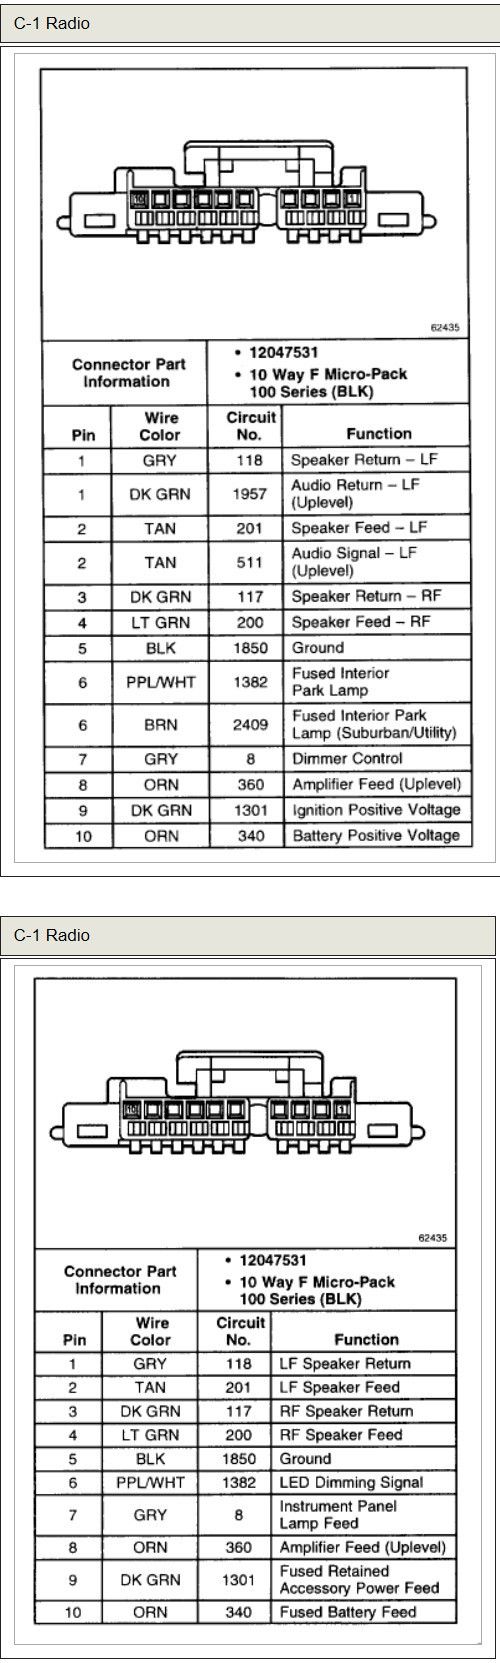 2007 Tahoe Radio Wiring Diagram Elegant Wiring Diagram Image 2002 GMC Radio  Wiring Diagram 2002 Chevy Tahoe Radio Wiring Harness Diagram